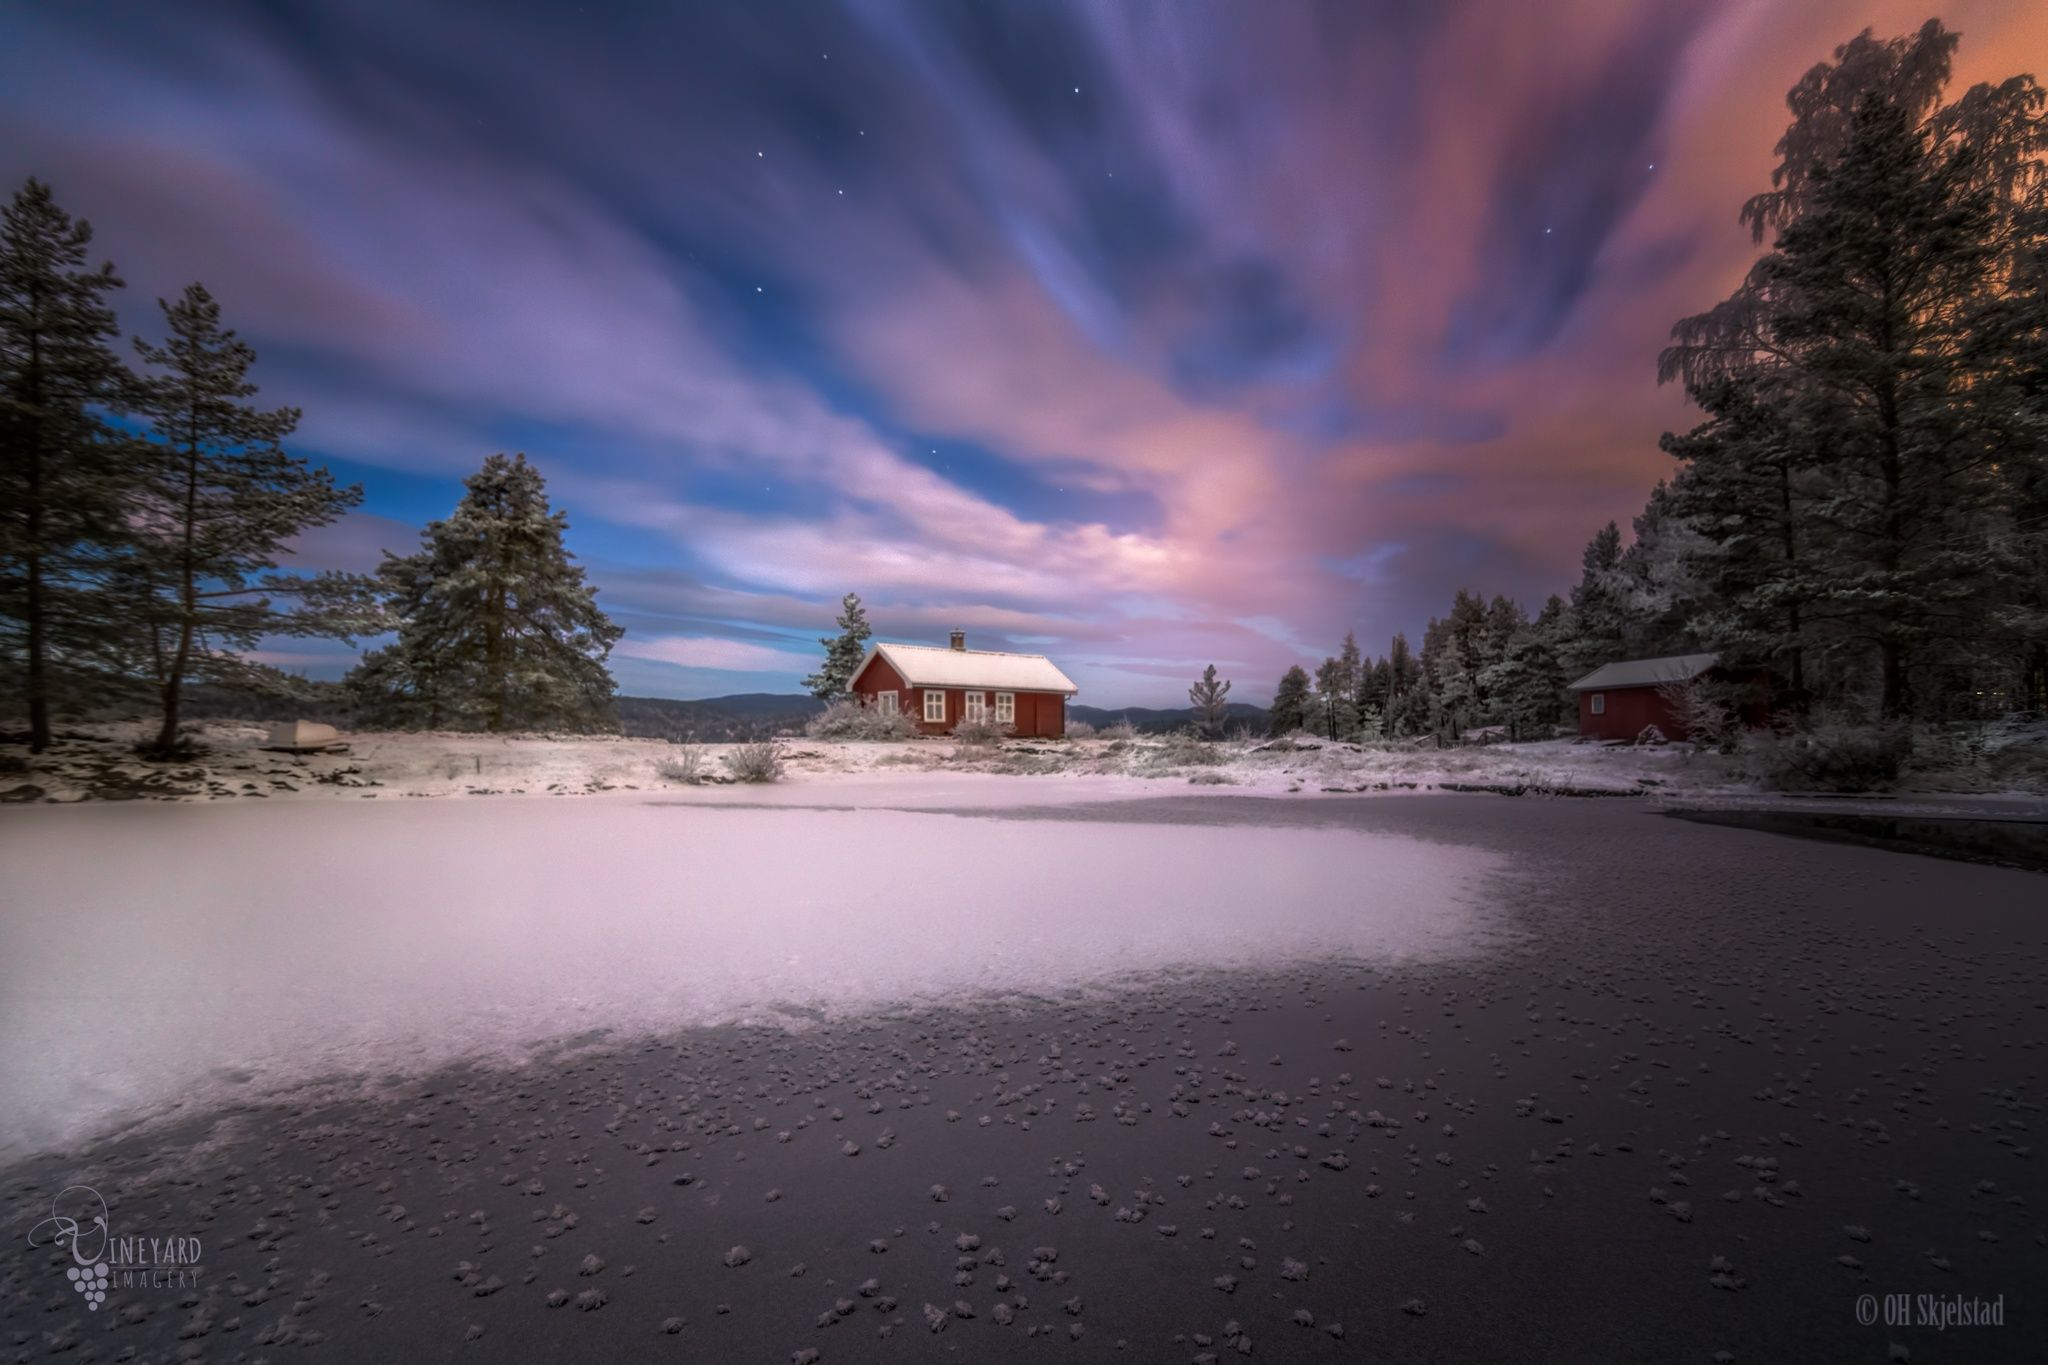 A Promise of a New Day by Ole Henrik Skjelstad on 500px